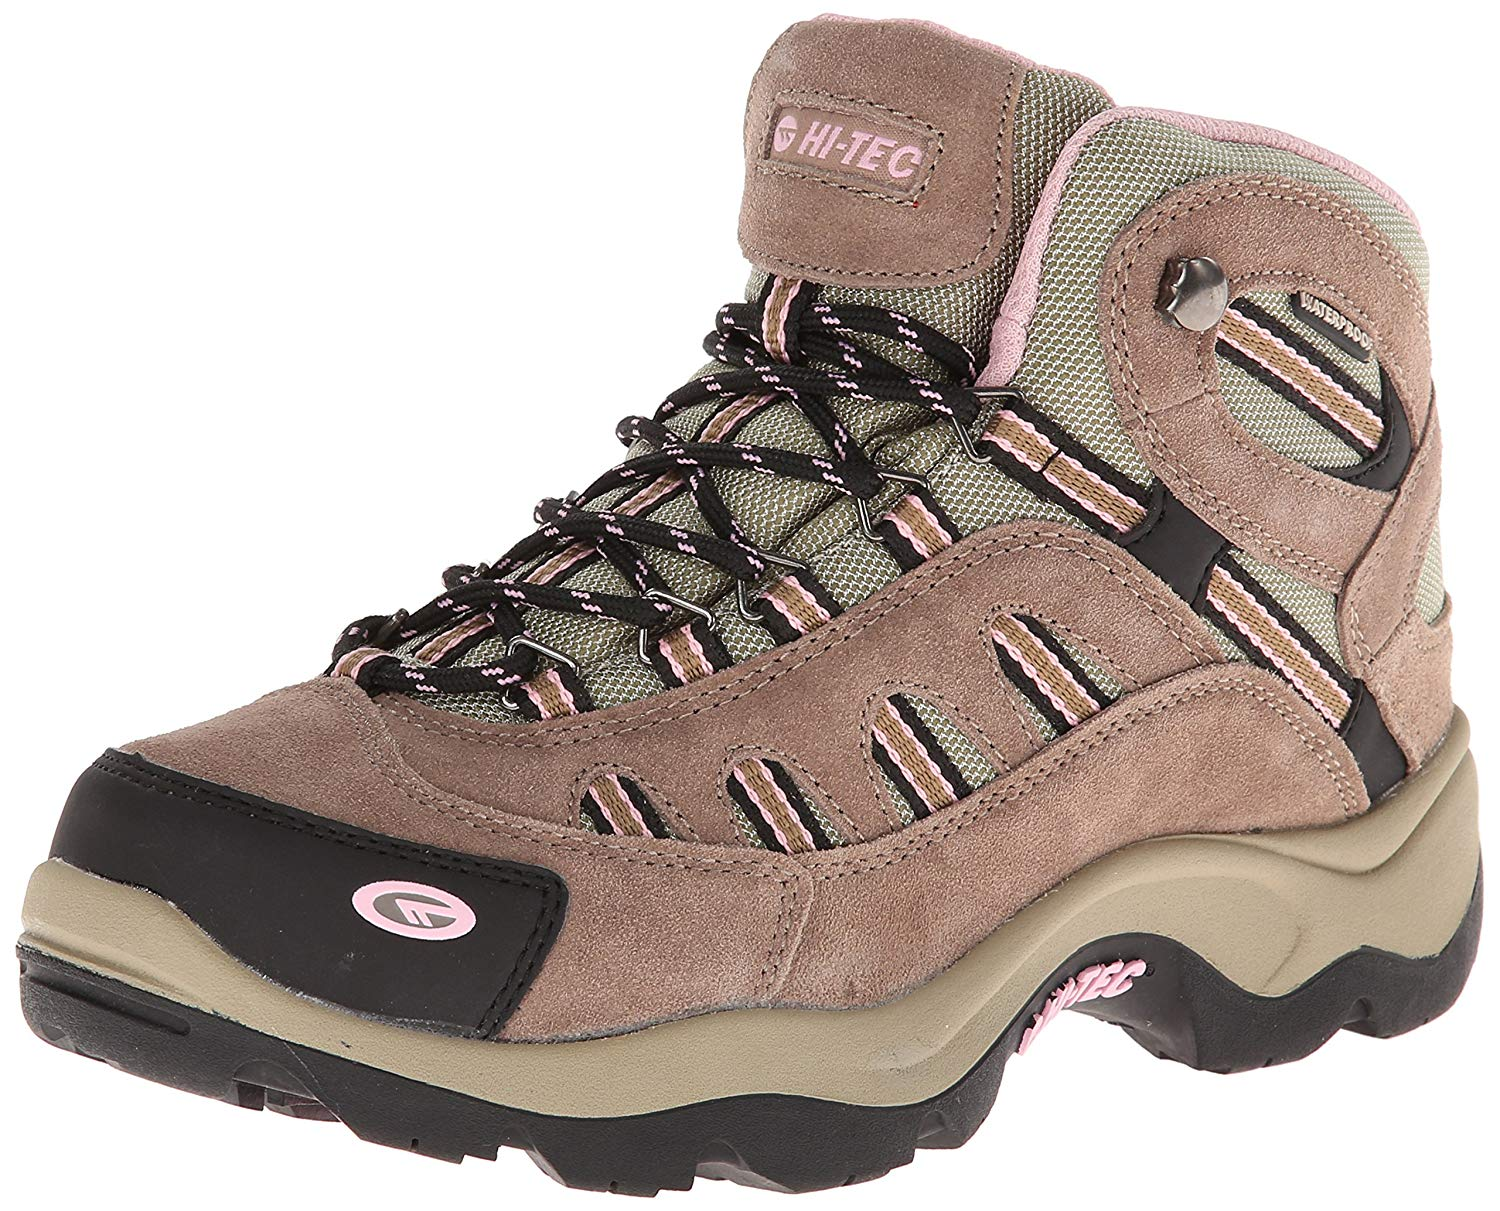 Top 10 Best Hiking Boots Under 100 For Men & Women 2020 Reviews 9